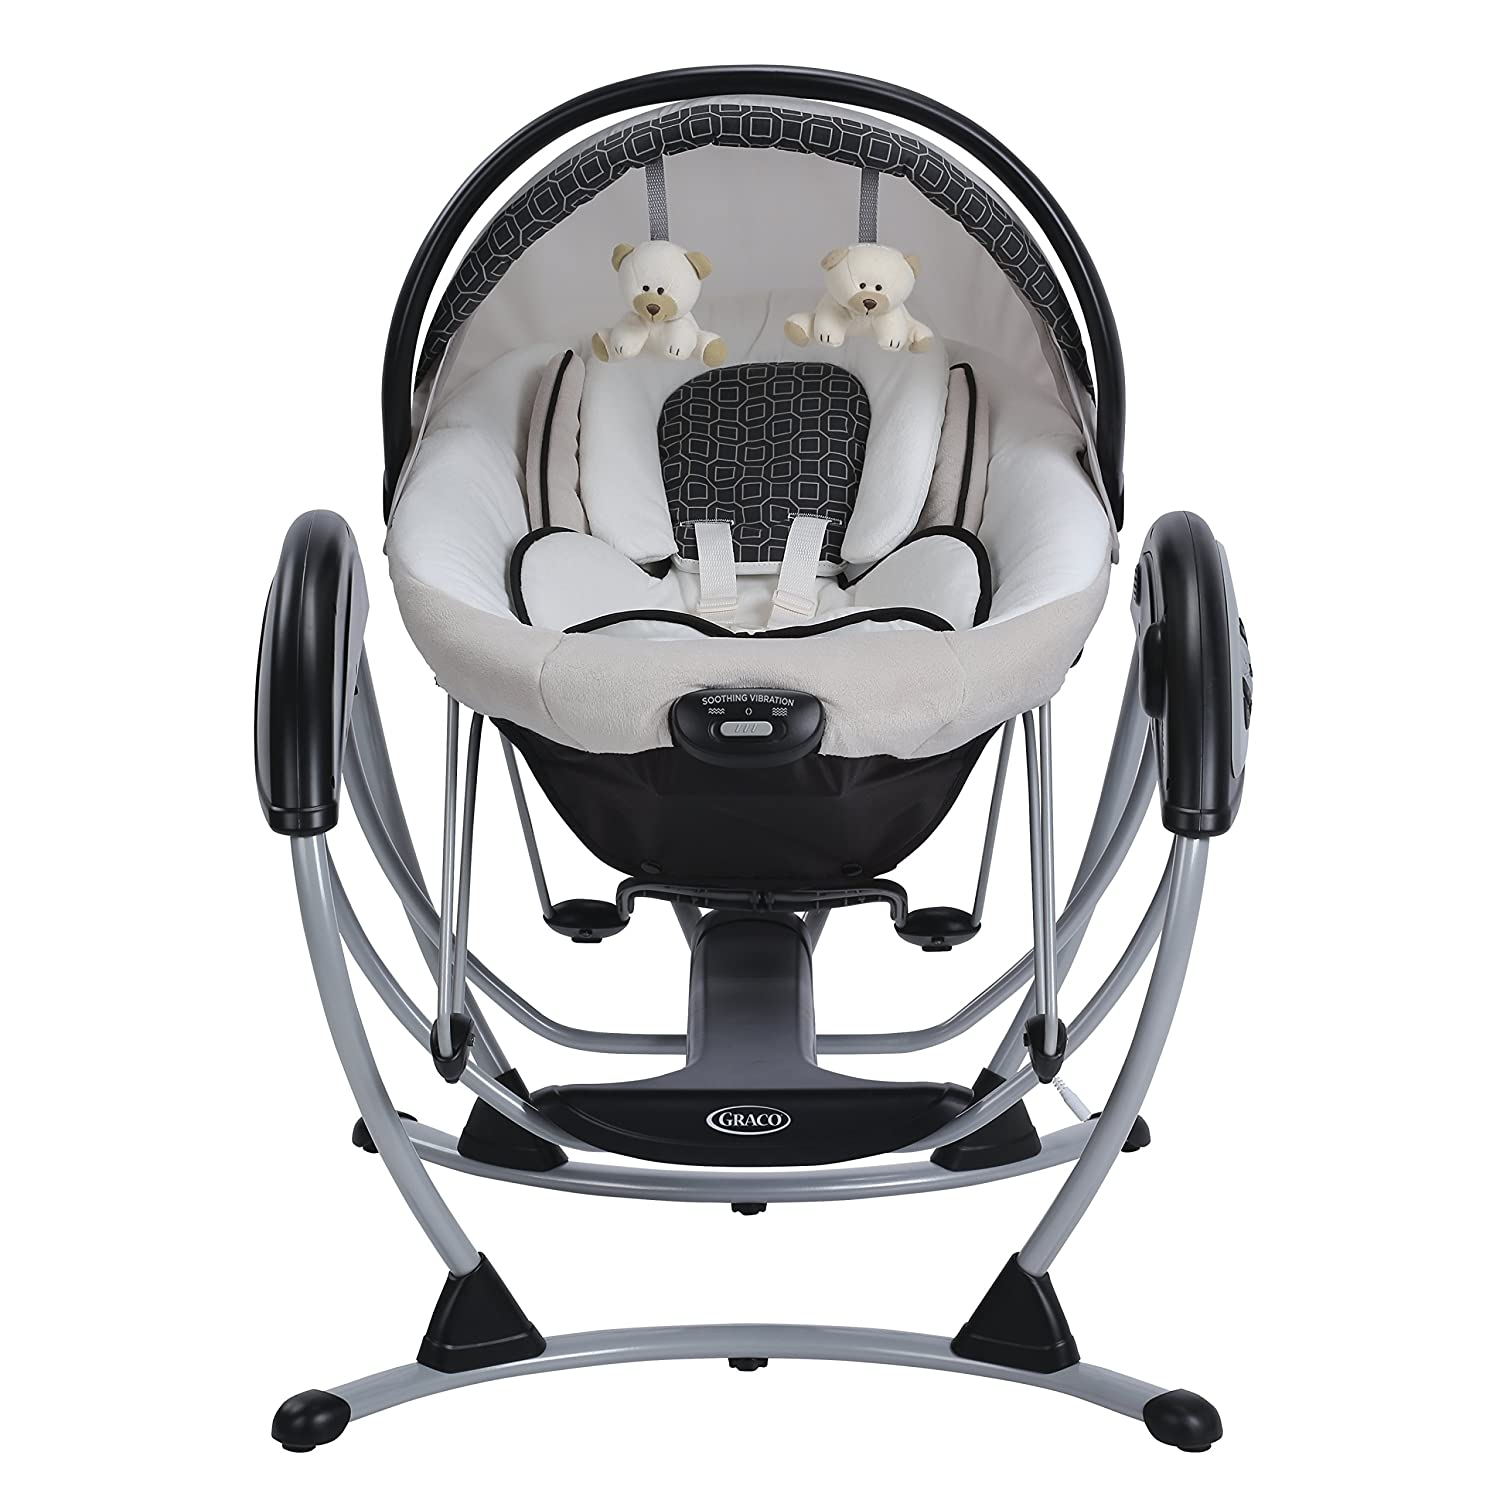 Full-sized model baby swing